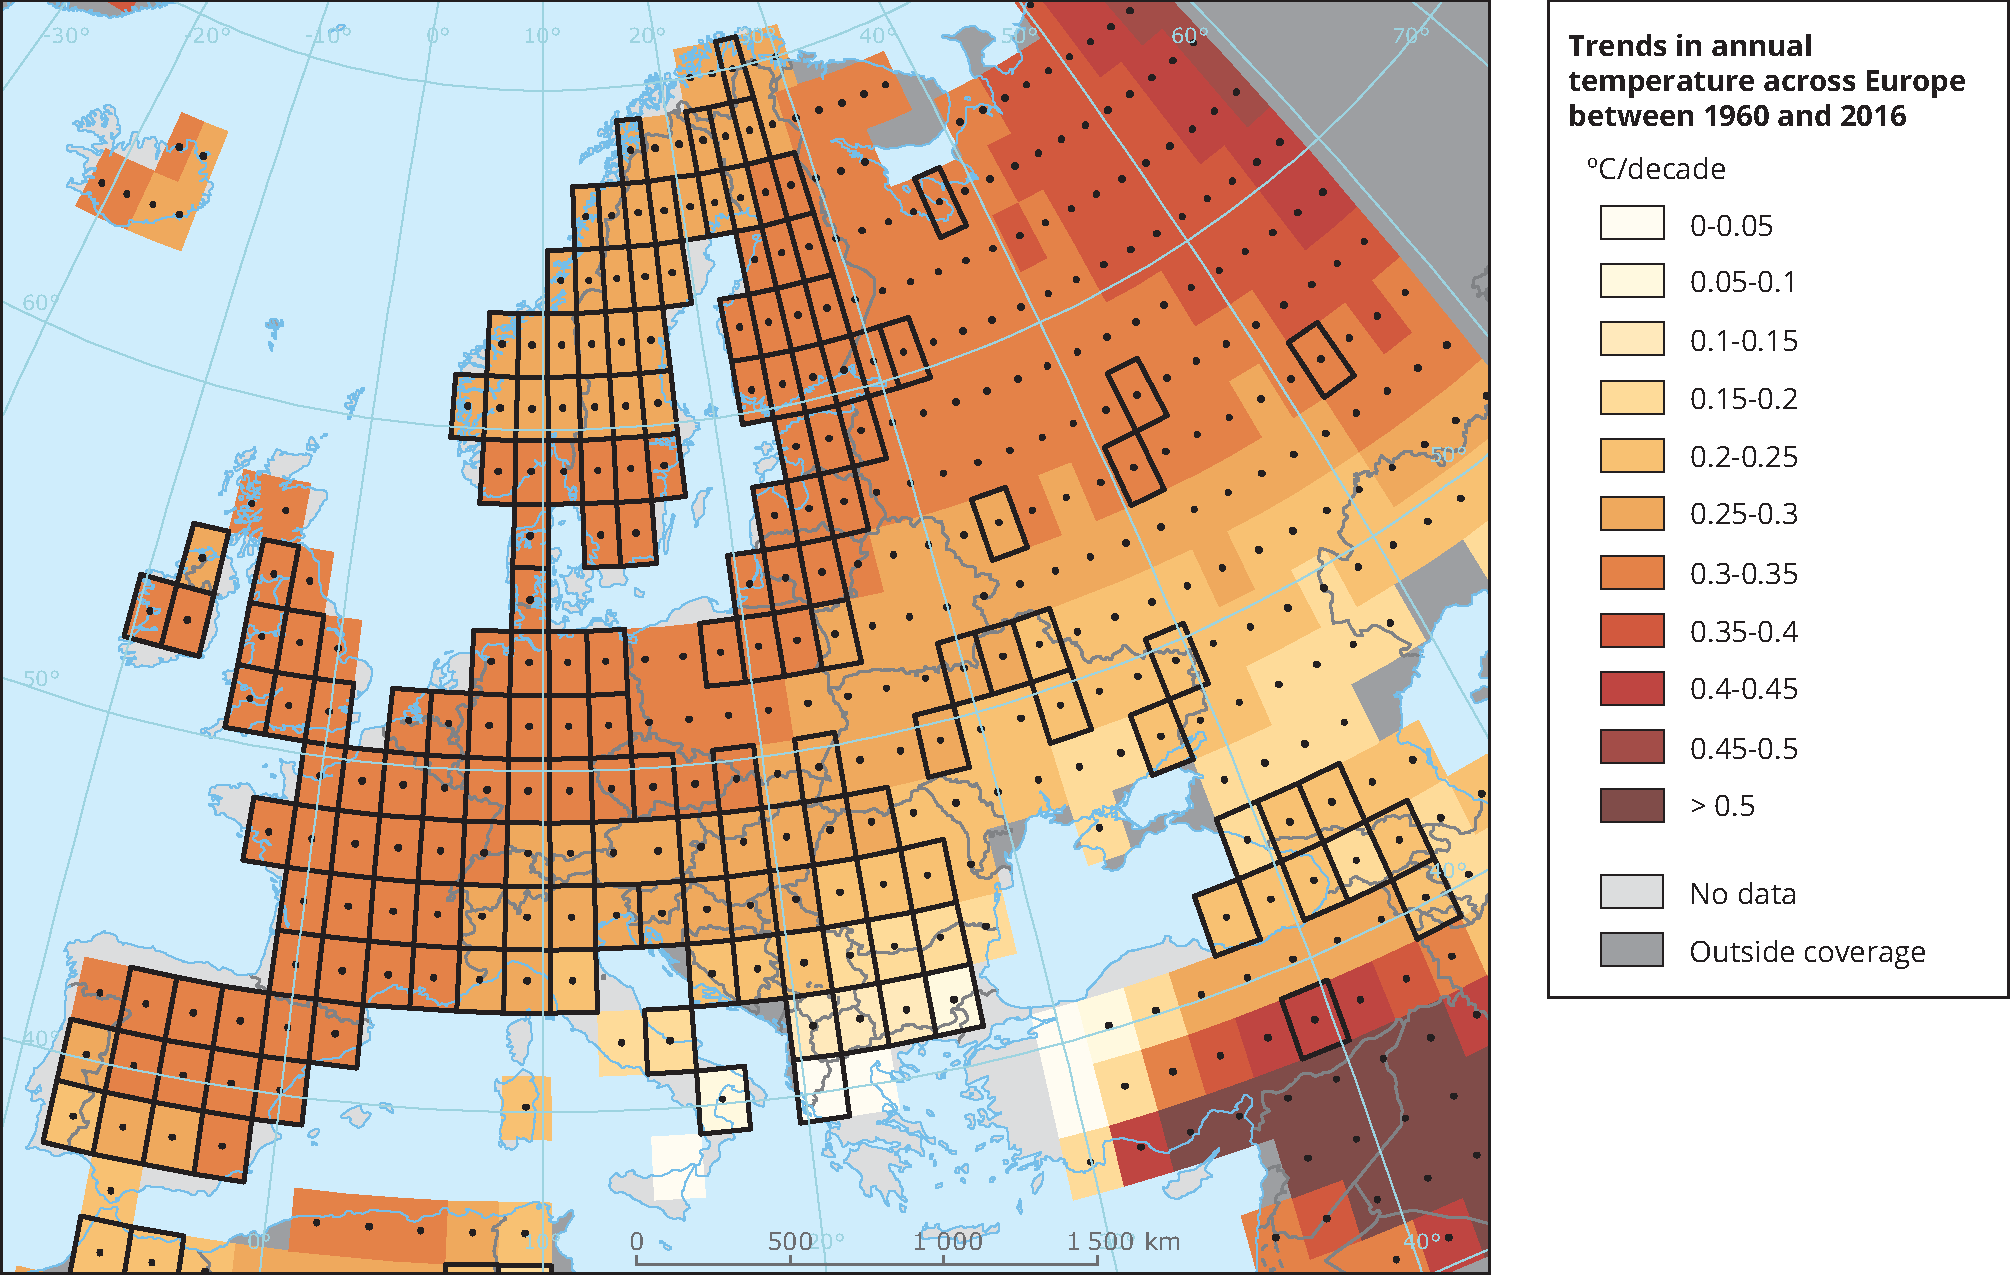 Trends in annual temperature across Europe between 1960 and 2016